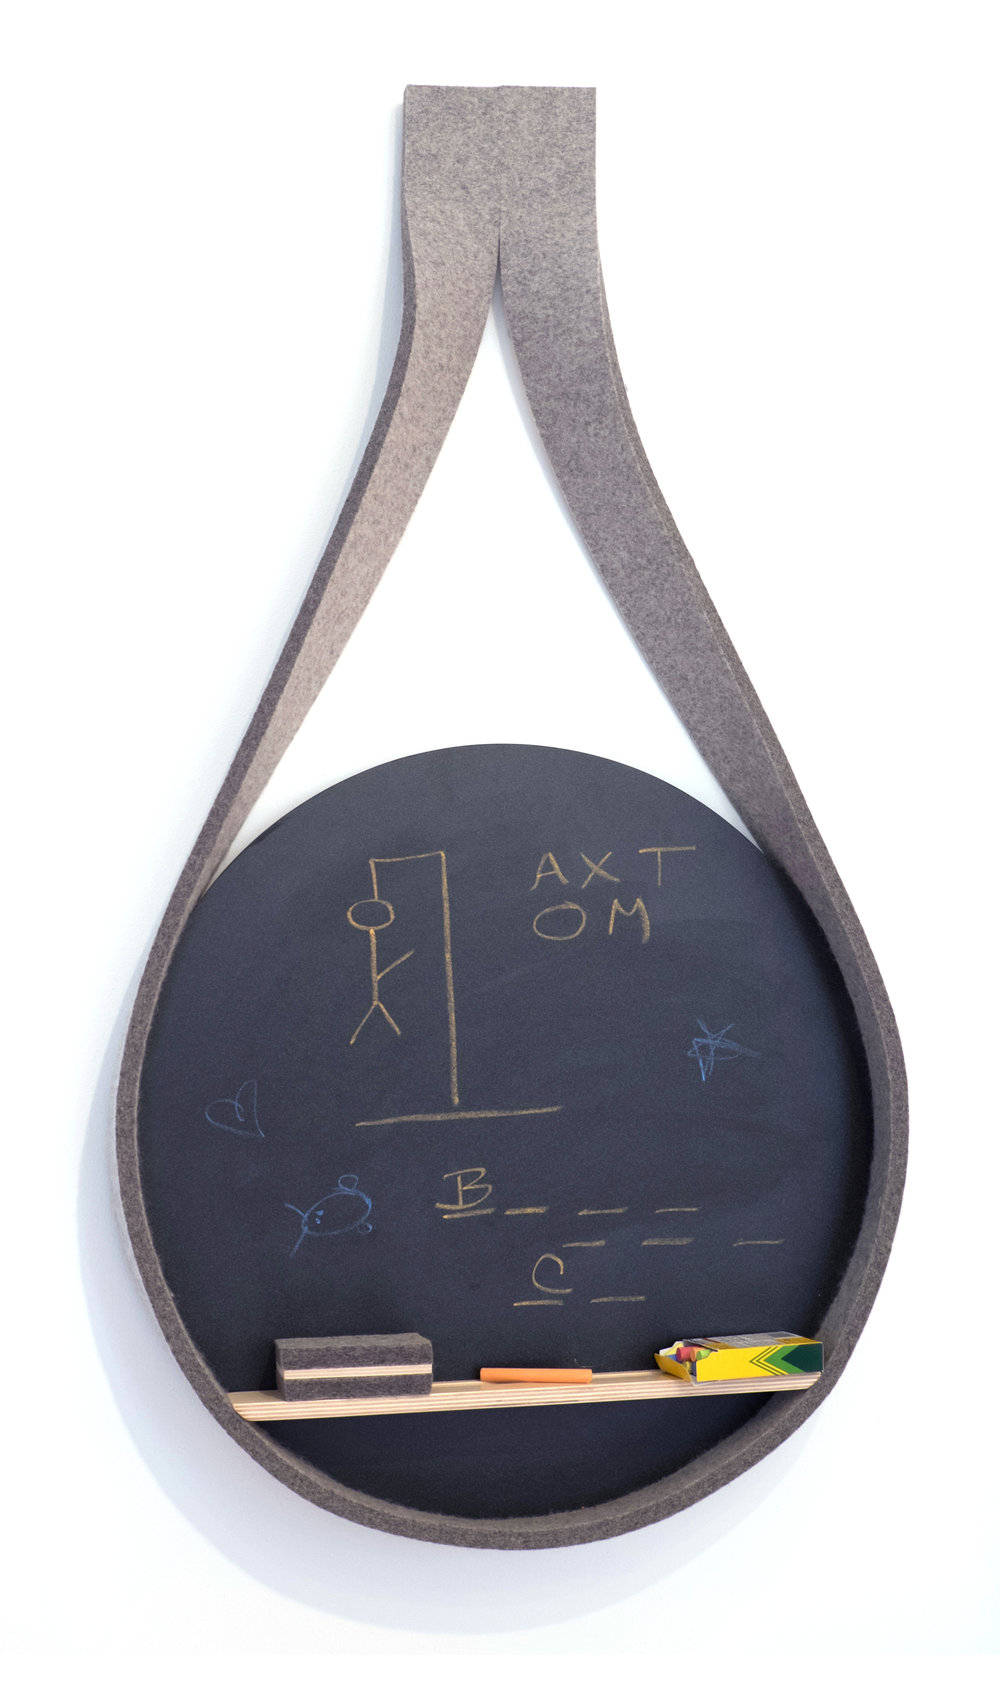 Write On Chalk Board Mike Garman Garman Furniture Houston, TX 2015 Blackboard, felt, Baltic Birch H 43 in, W 22.5 in, D 3 in LIST PRICE: $350 DESIGNER DISCOUNT PRICE: $297.50 LEAD TIME: 3-5 Days Shipping & Handling QUANTITY IN STOCK: 3 ONLINE PLATFORMS: kM Web, Artsy